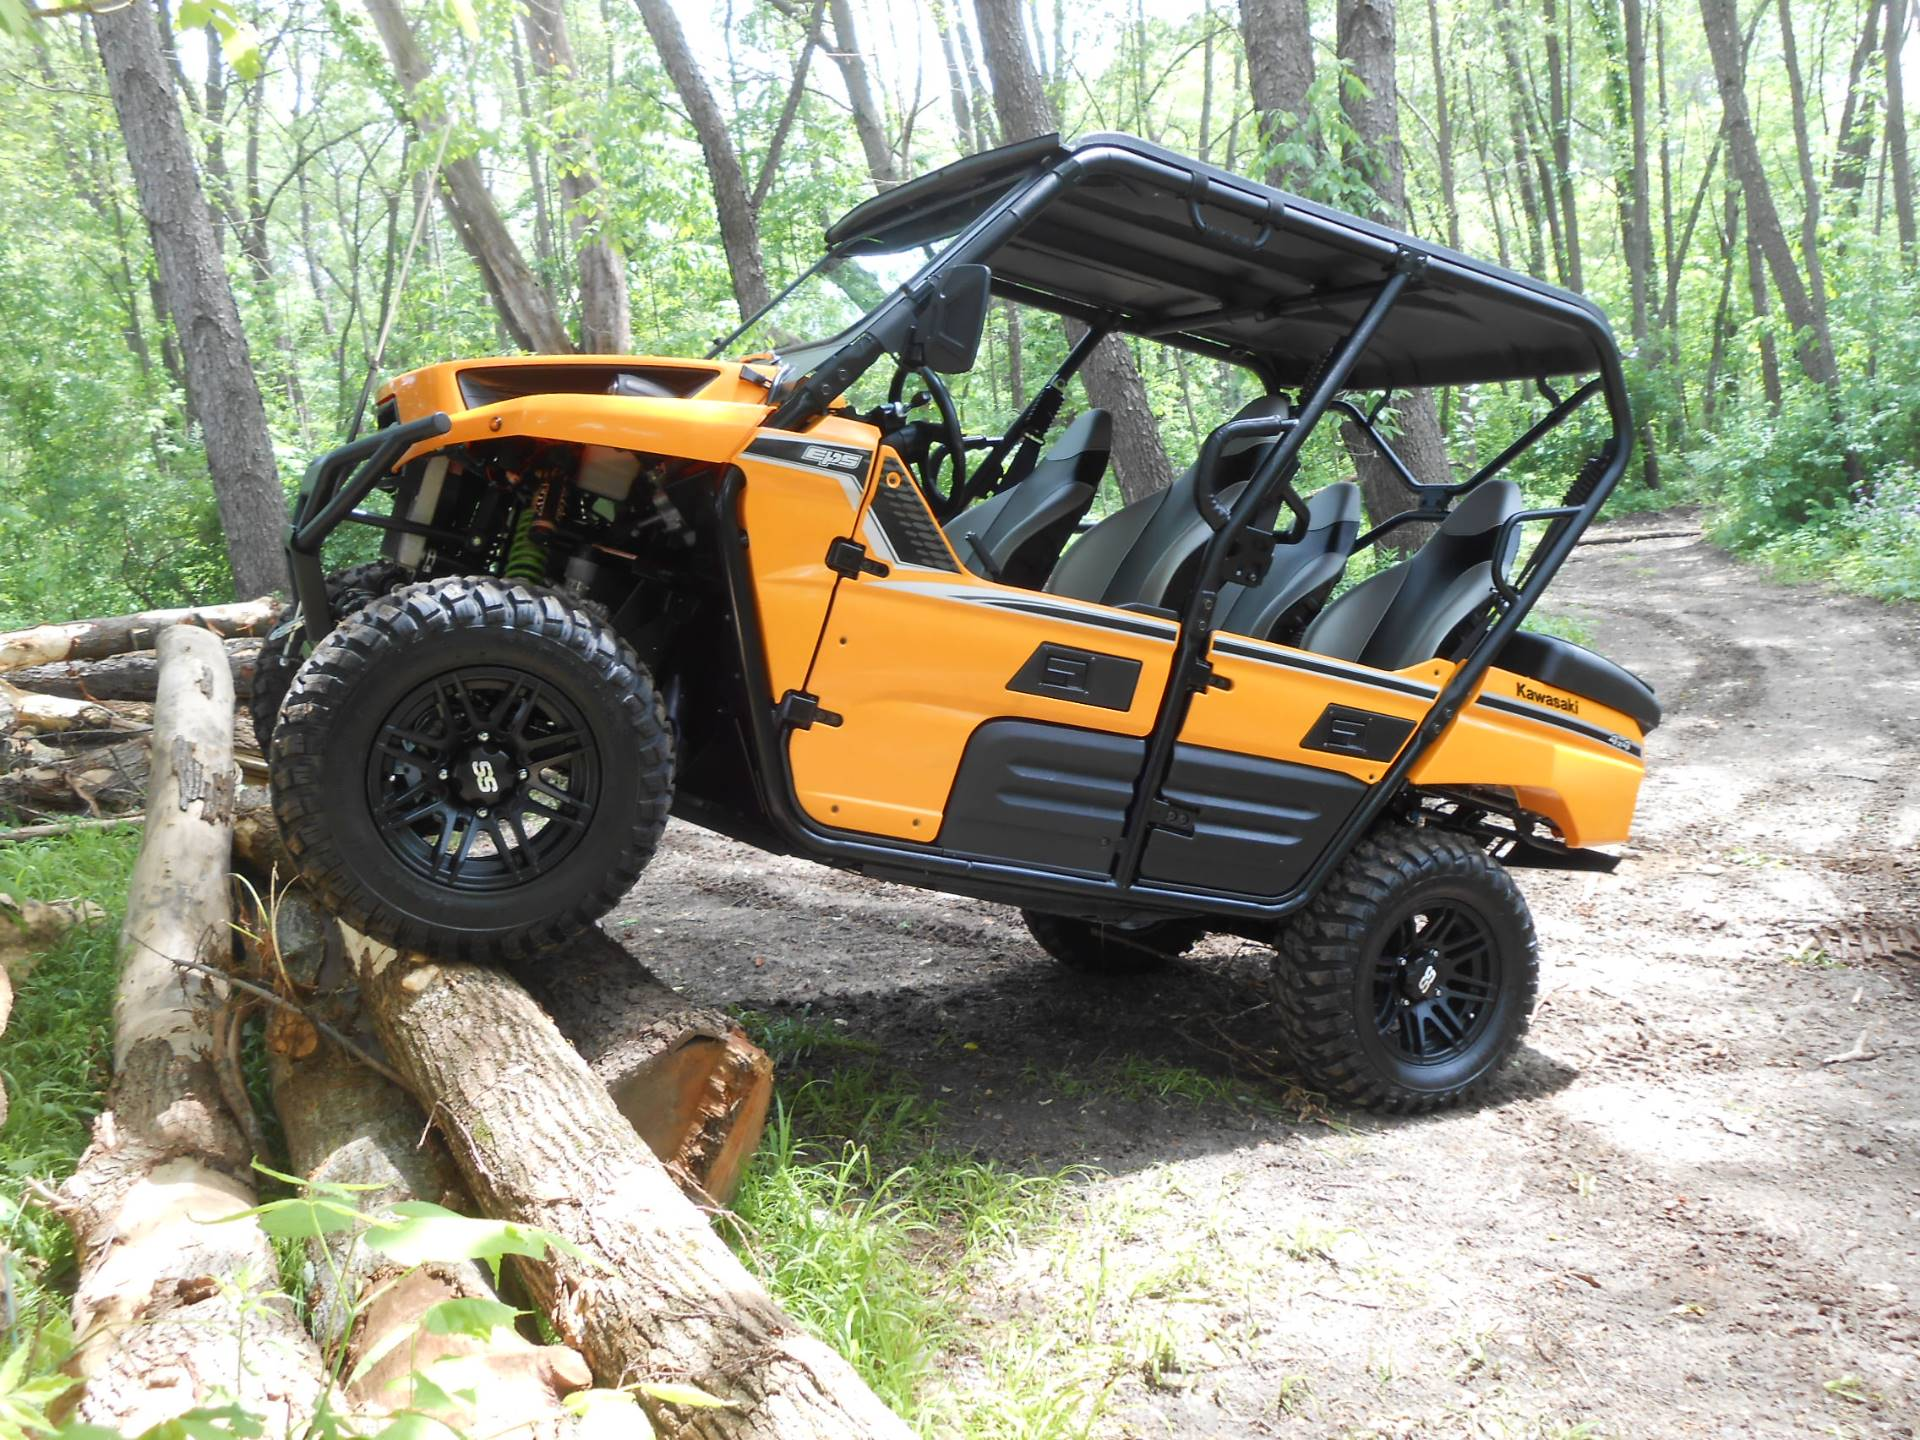 2013 Kawasaki Teryx4™ 750 4x4 EPS LE in Howell, Michigan - Photo 68